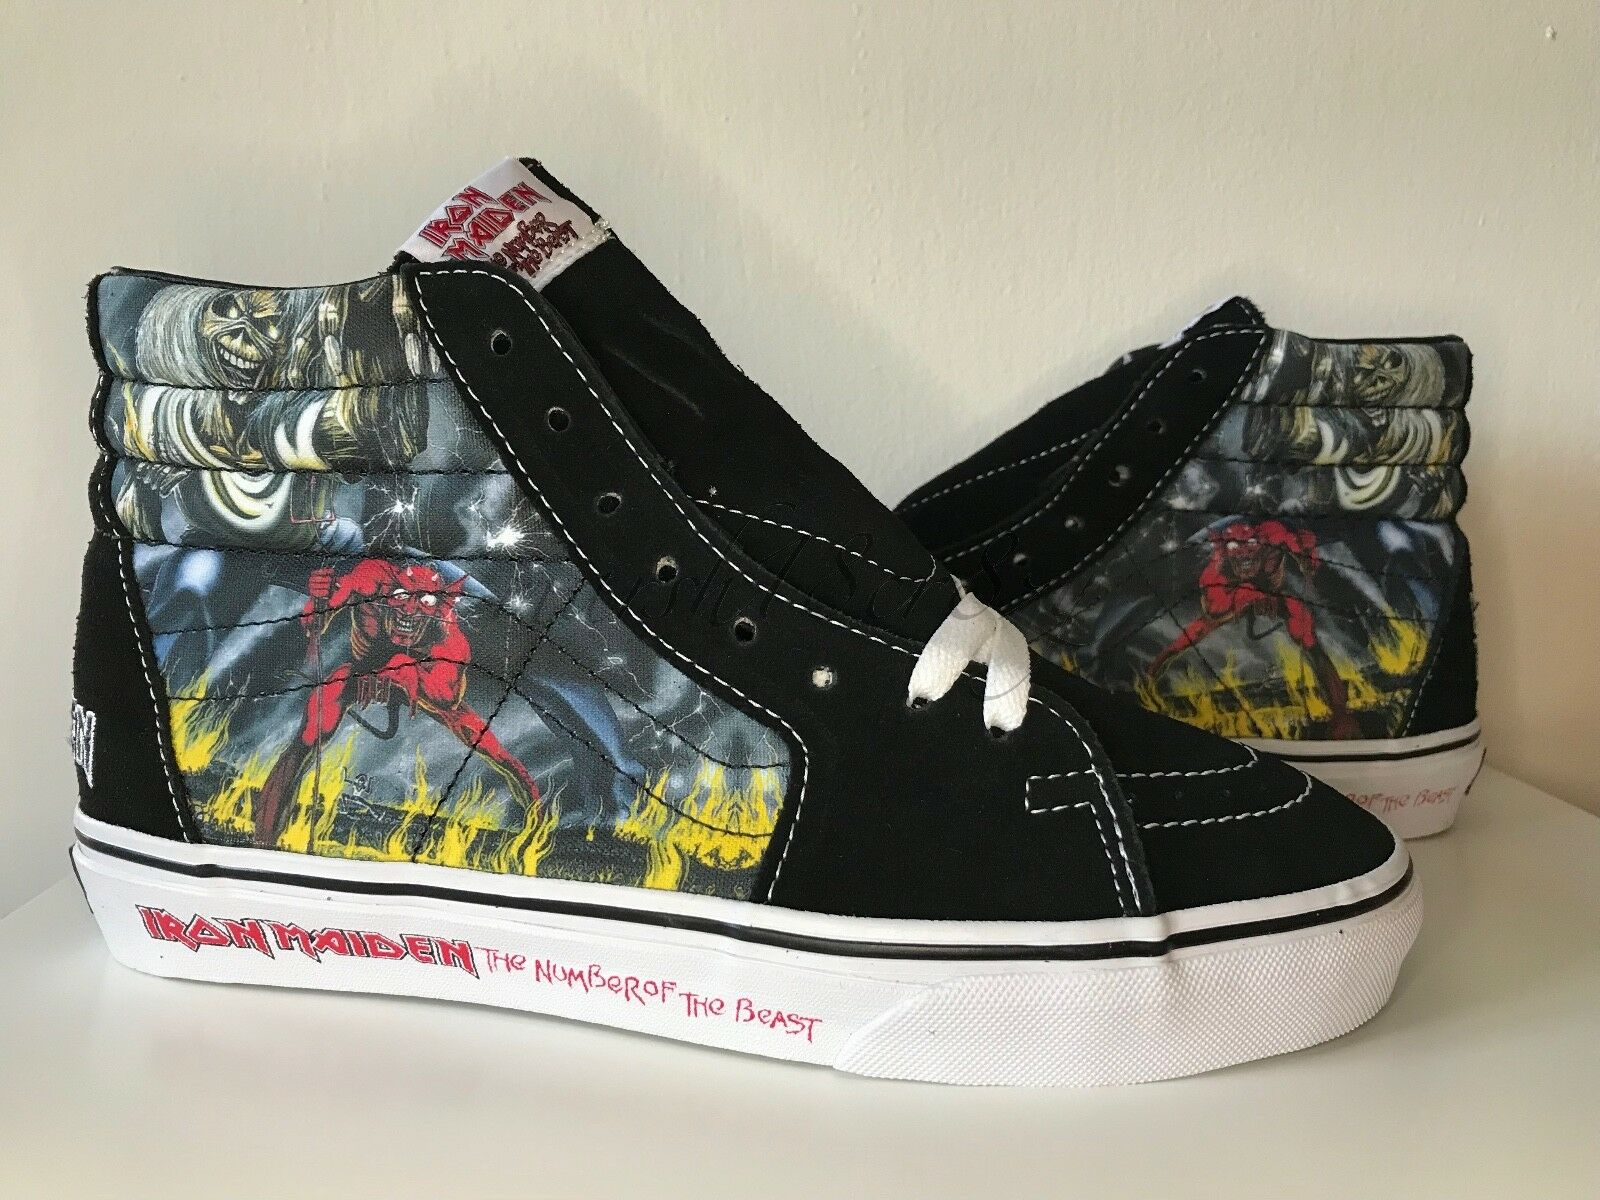 Brand New Vans x Iron Maiden  Number of The Beast  sz. 7 RARE HARD TO FIND